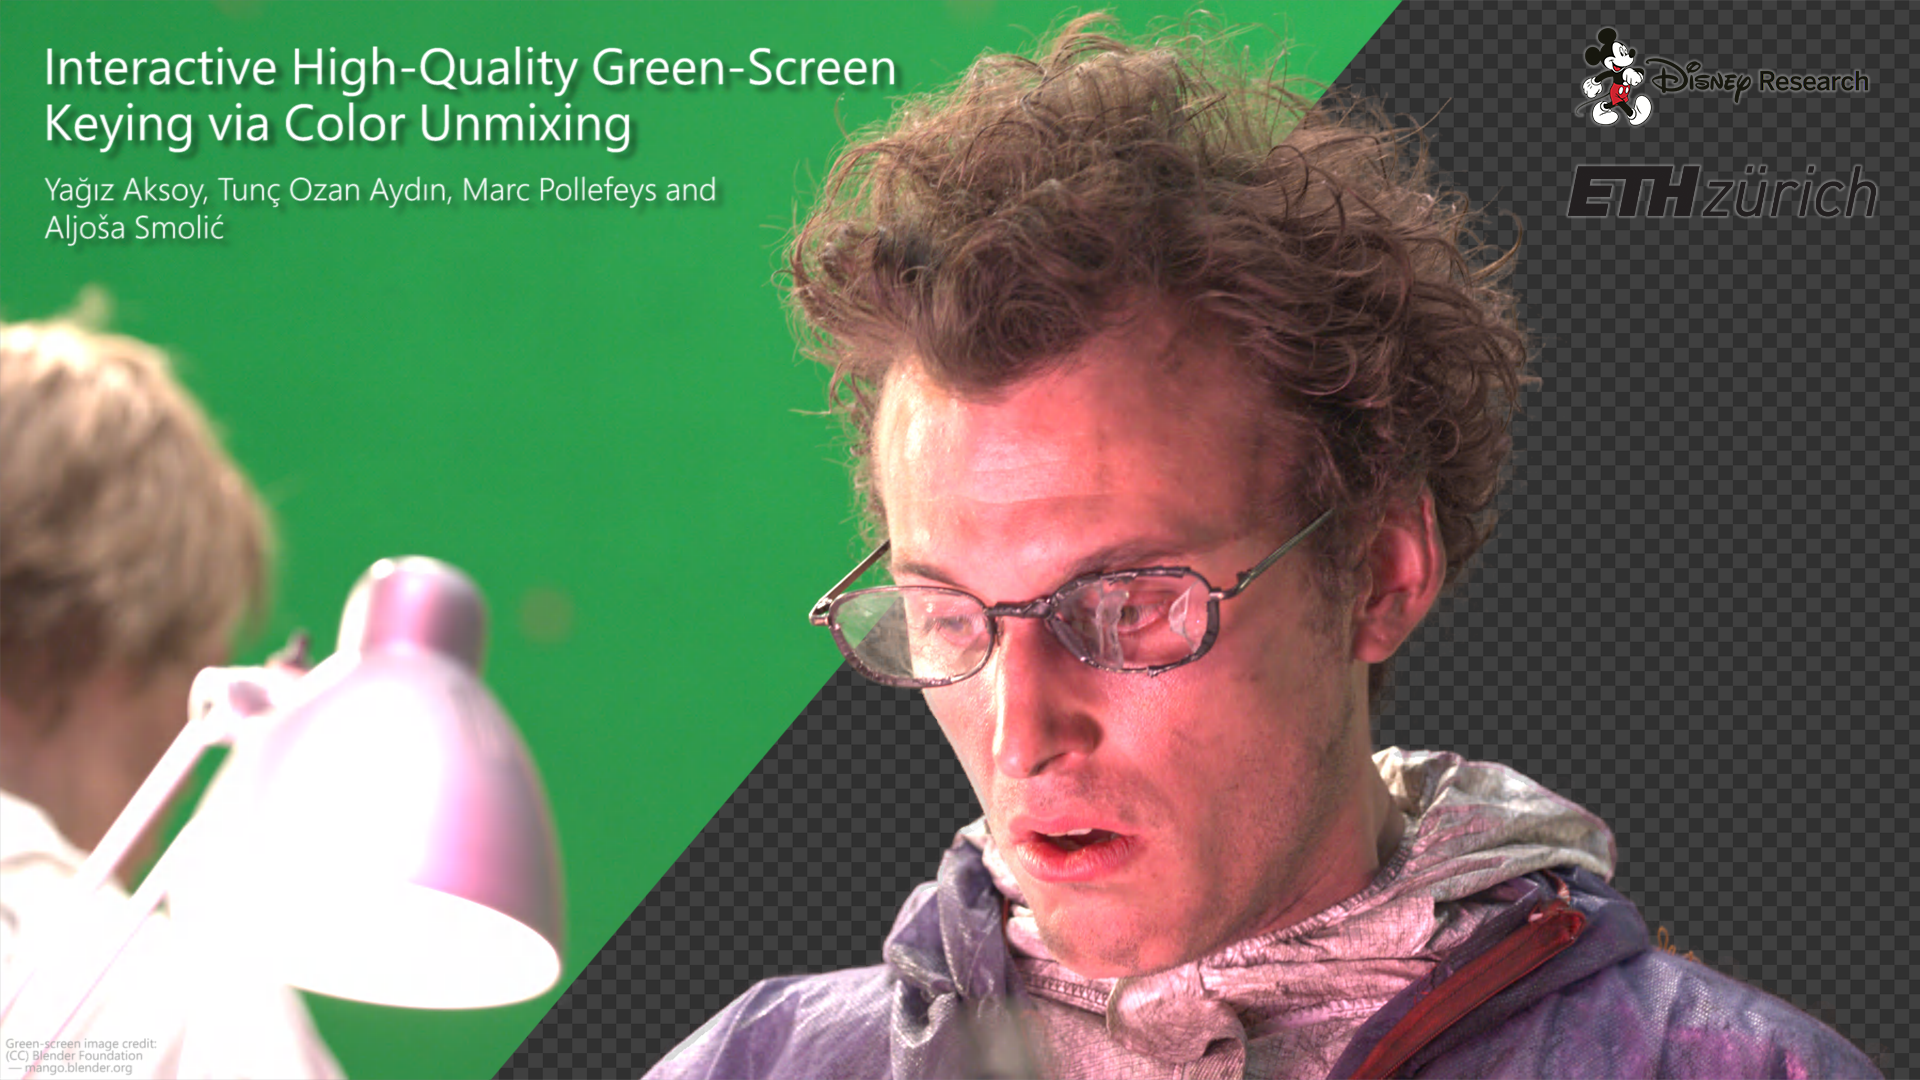 Interactive High-Quality Green-Screen Keying via Color Unmixing-Image